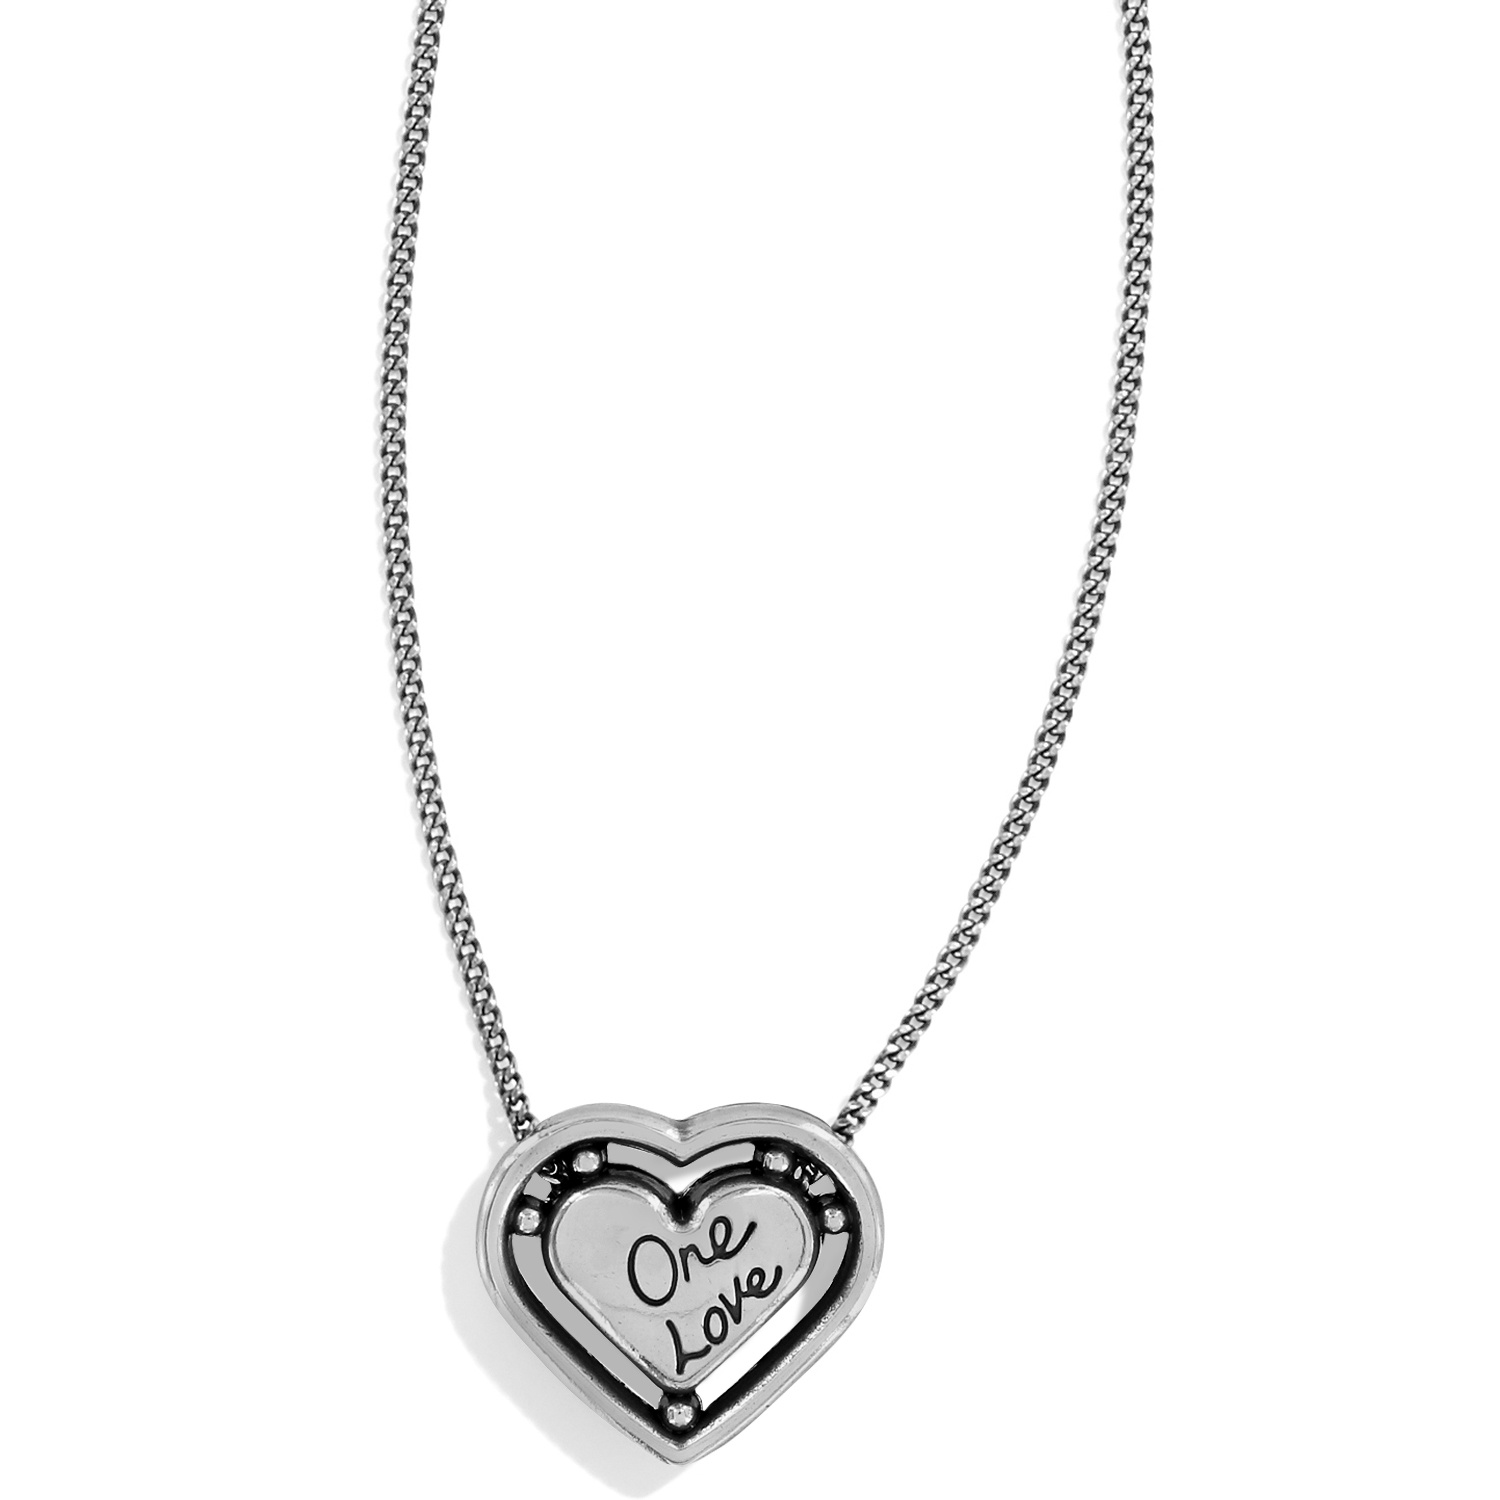 5f951edac9 One Love One Love Petite Heart Necklace Necklaces